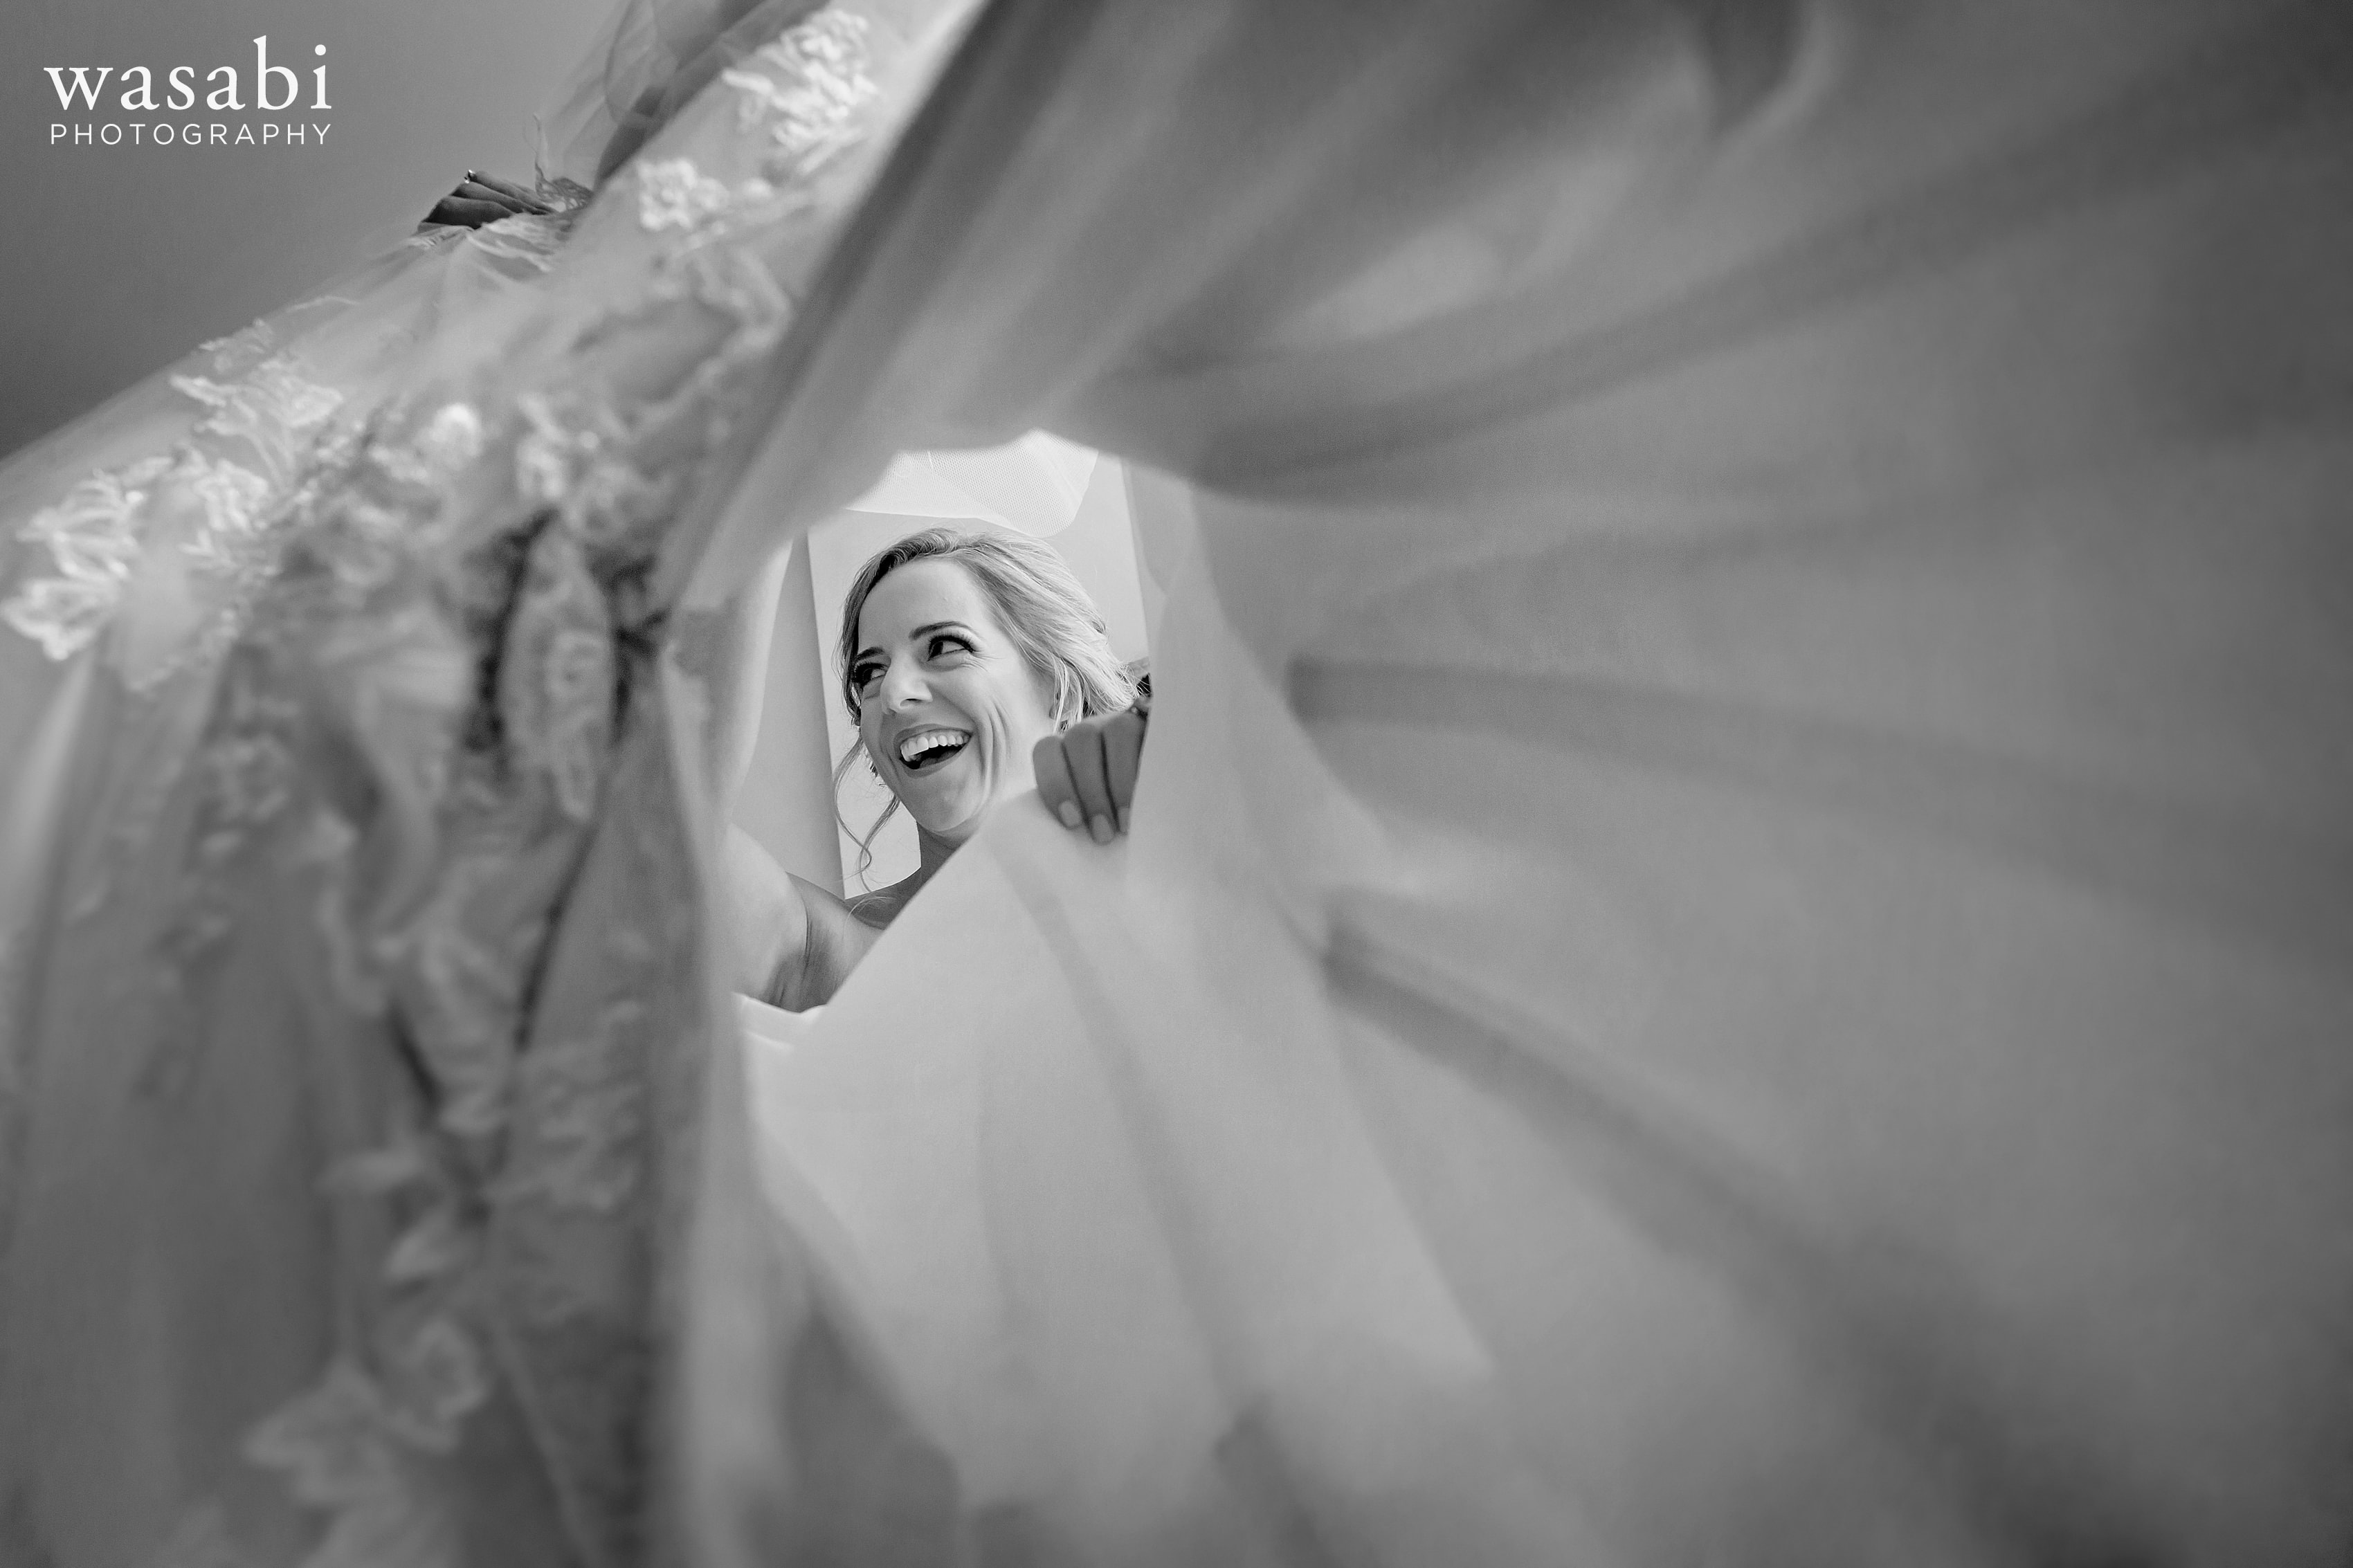 Bride puts on wedding dress creative photo looking through dress